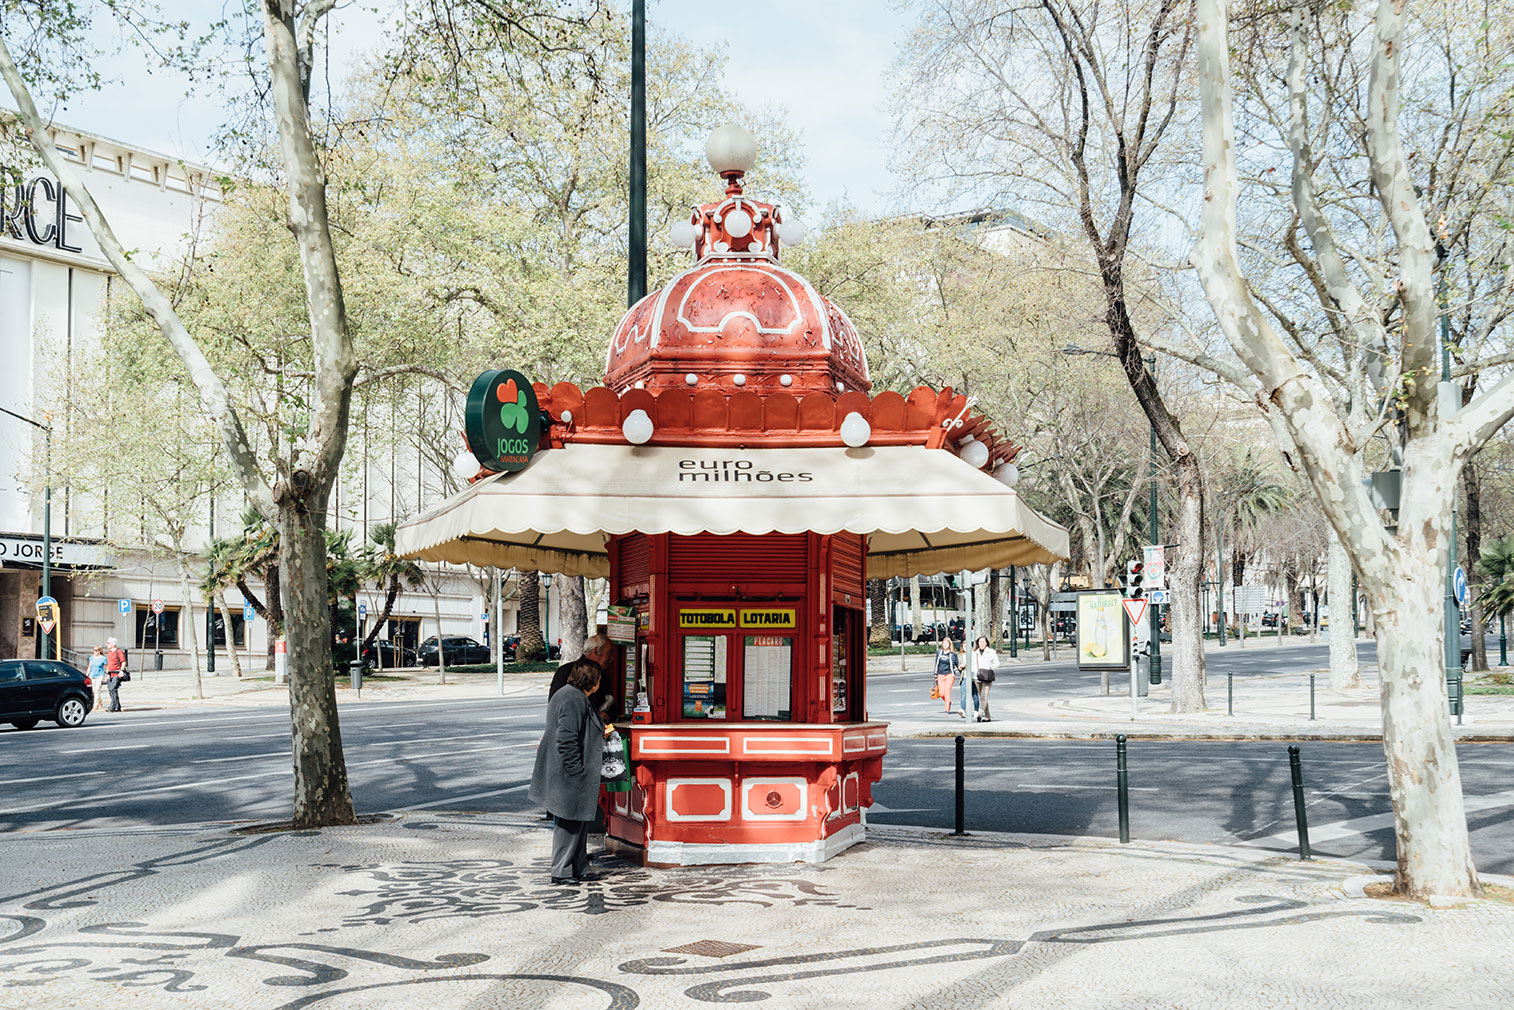 Lisbon-kiosks-richard-john-seymour-16